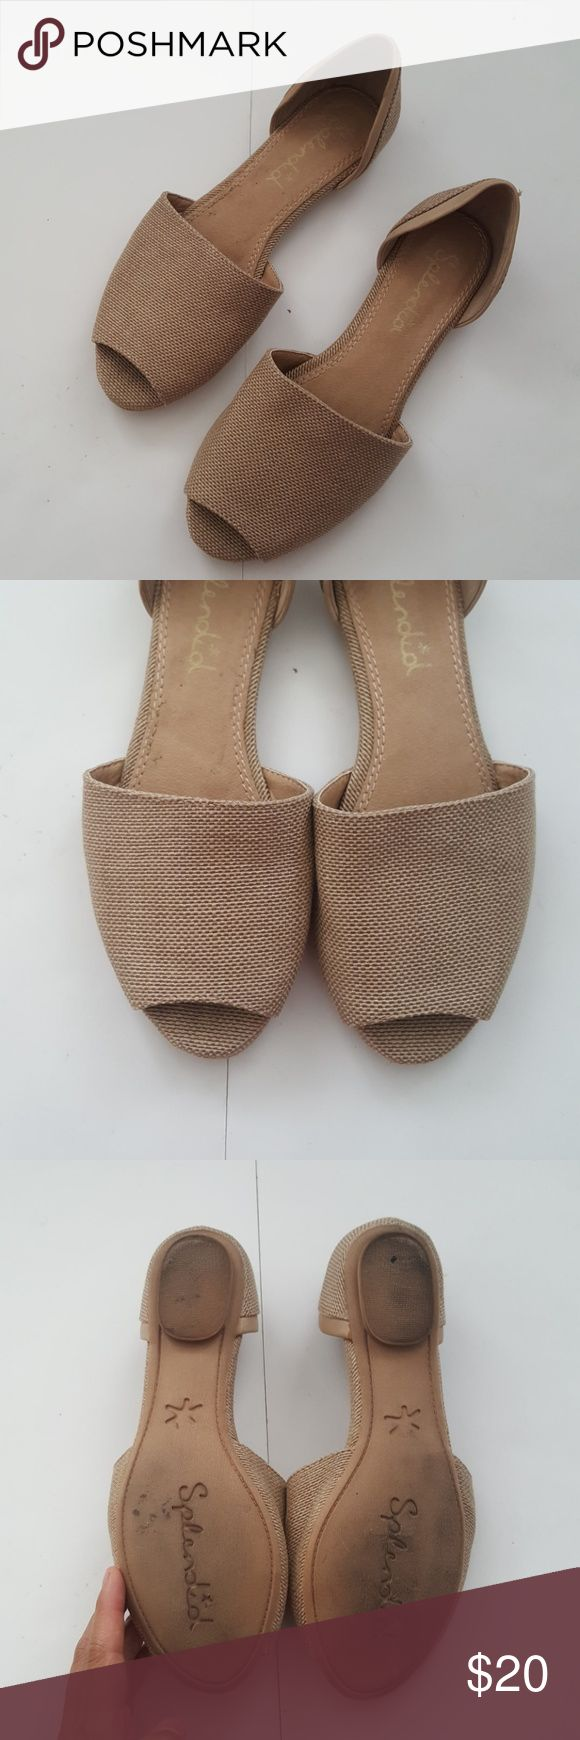 Splendid Tan Rattan Flats Some light signs of wear. Mainly on back heel. These are not ideal for wide feet and run small. I wear a size 7 pretty much in all brands and I feel these particular shoes would work best for a 6 1/2. Please refer to 7th image for more info. Splendid Shoes Flats & Loafers